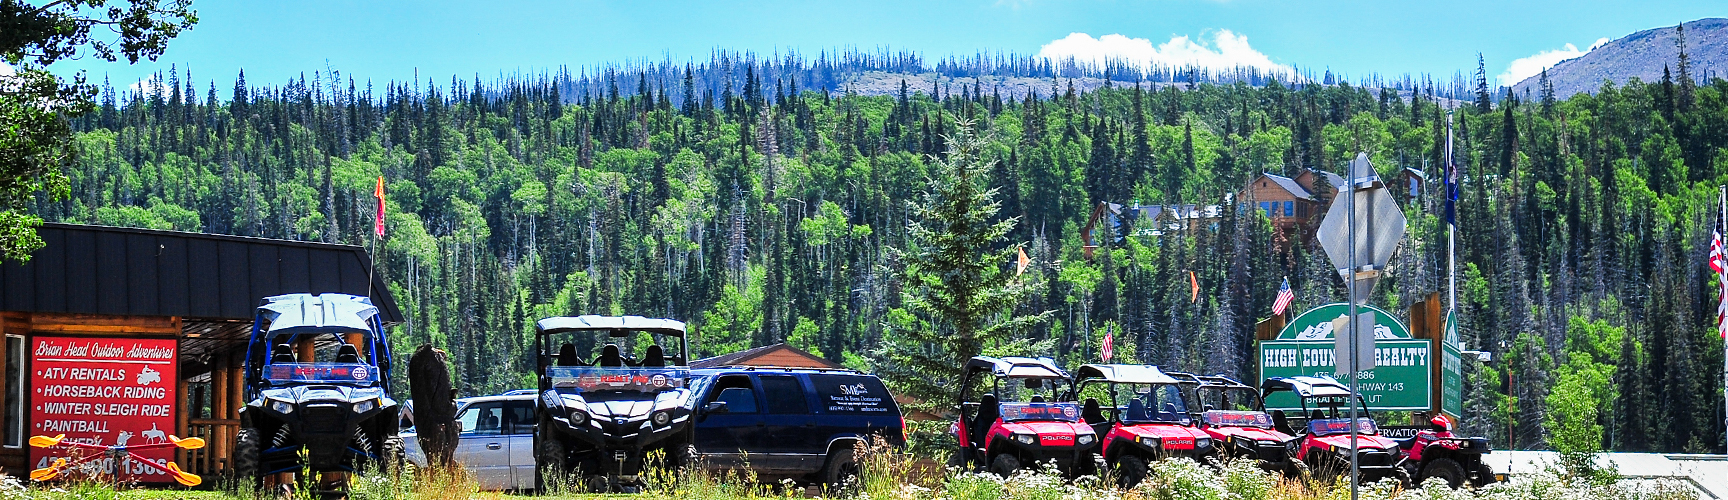 A picture of an activities rental shop surrounded by lush green trees with atv's and cars outside the building near Cedar Breaks Lodge Resort & Spa